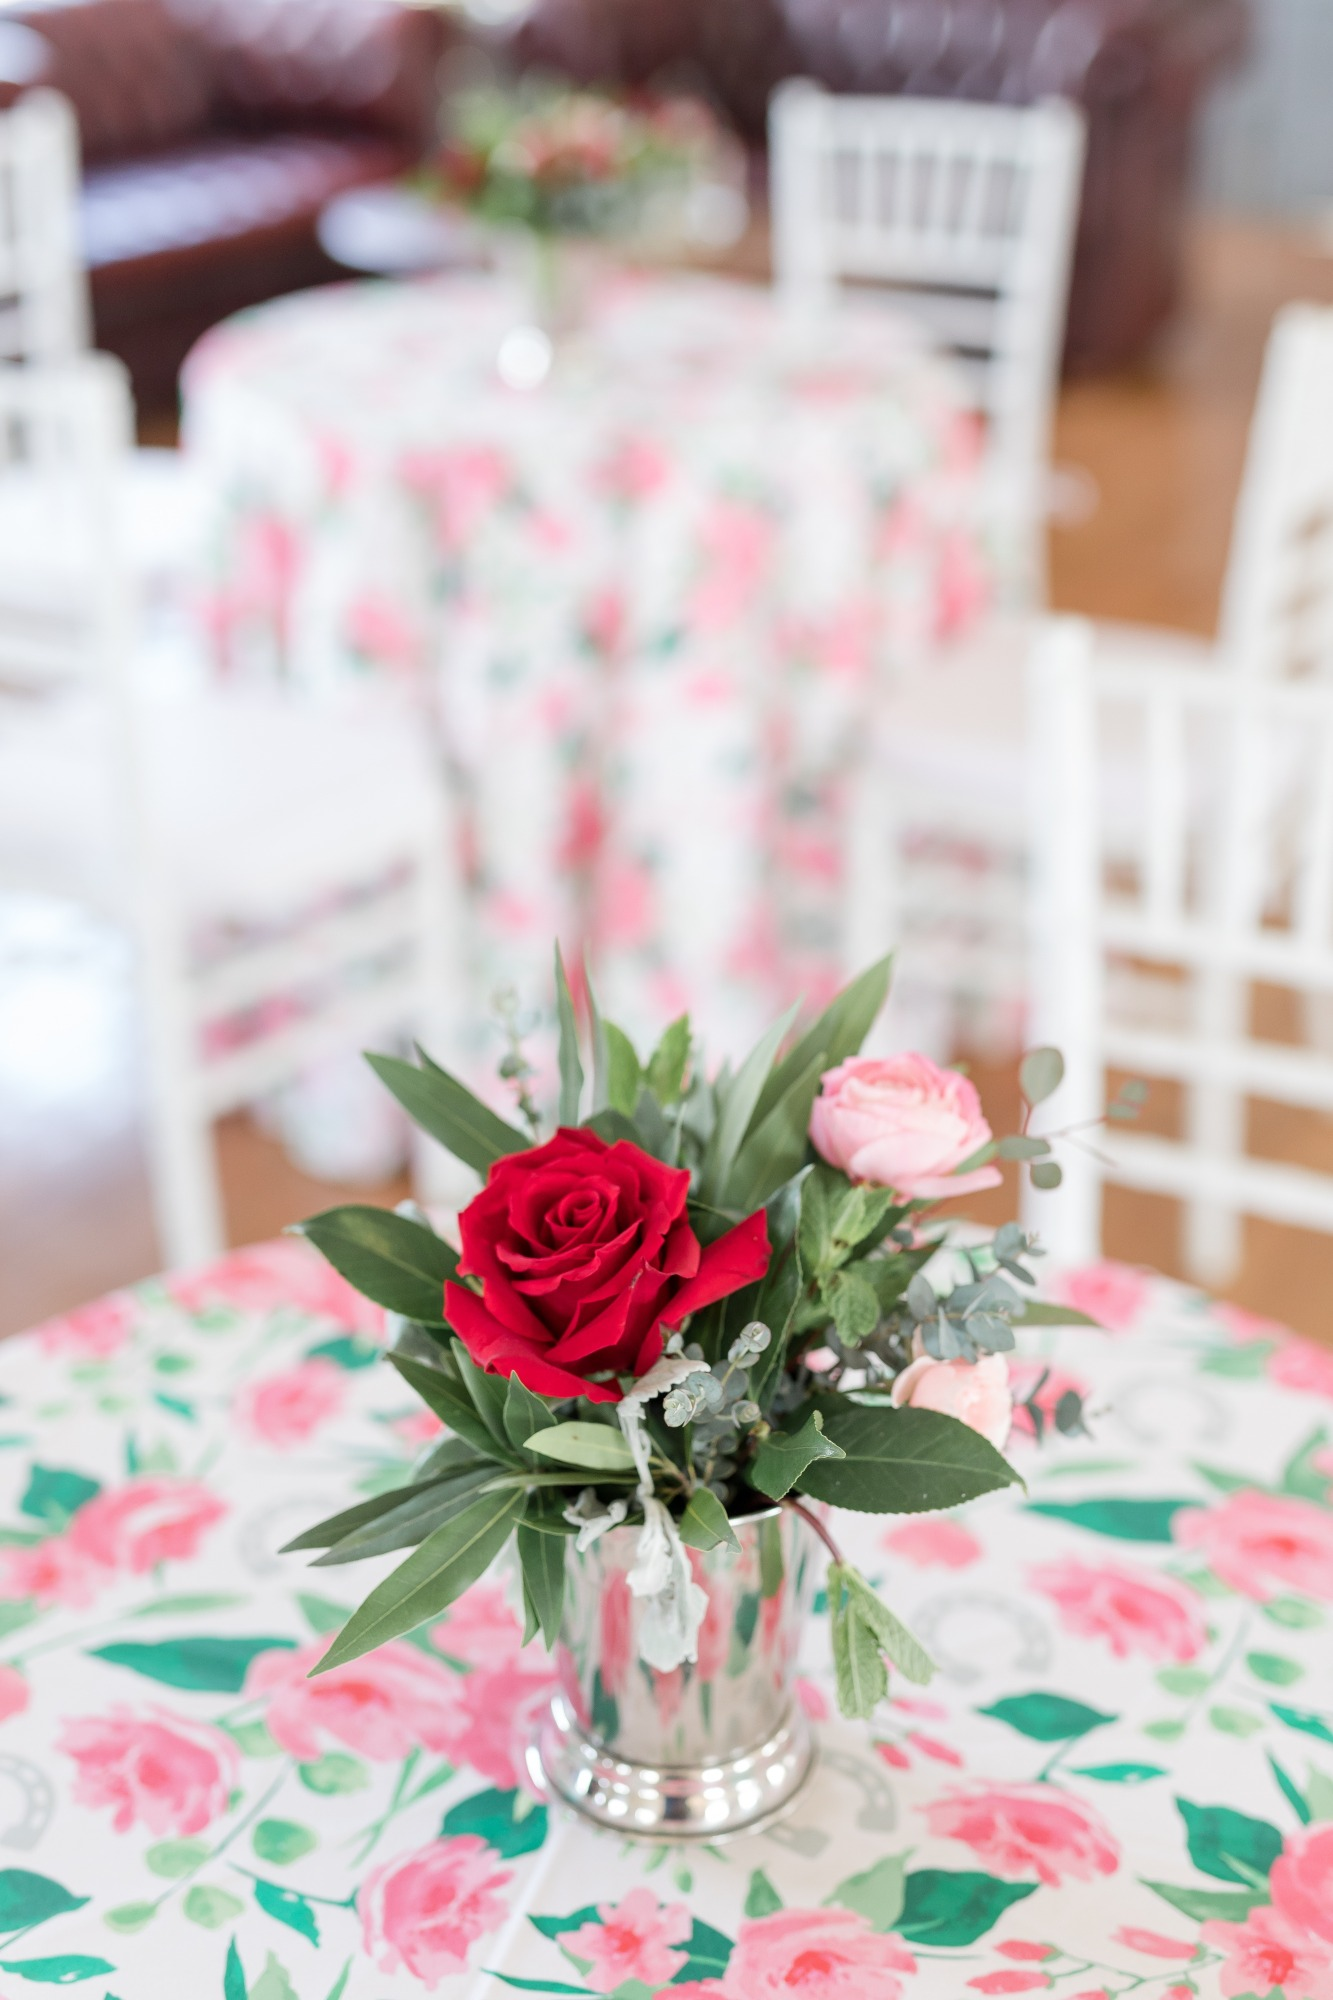 Tablecloth and Flowers from Off to the Races Derby Party Styled by Cherry Blossom Events | Black Twine